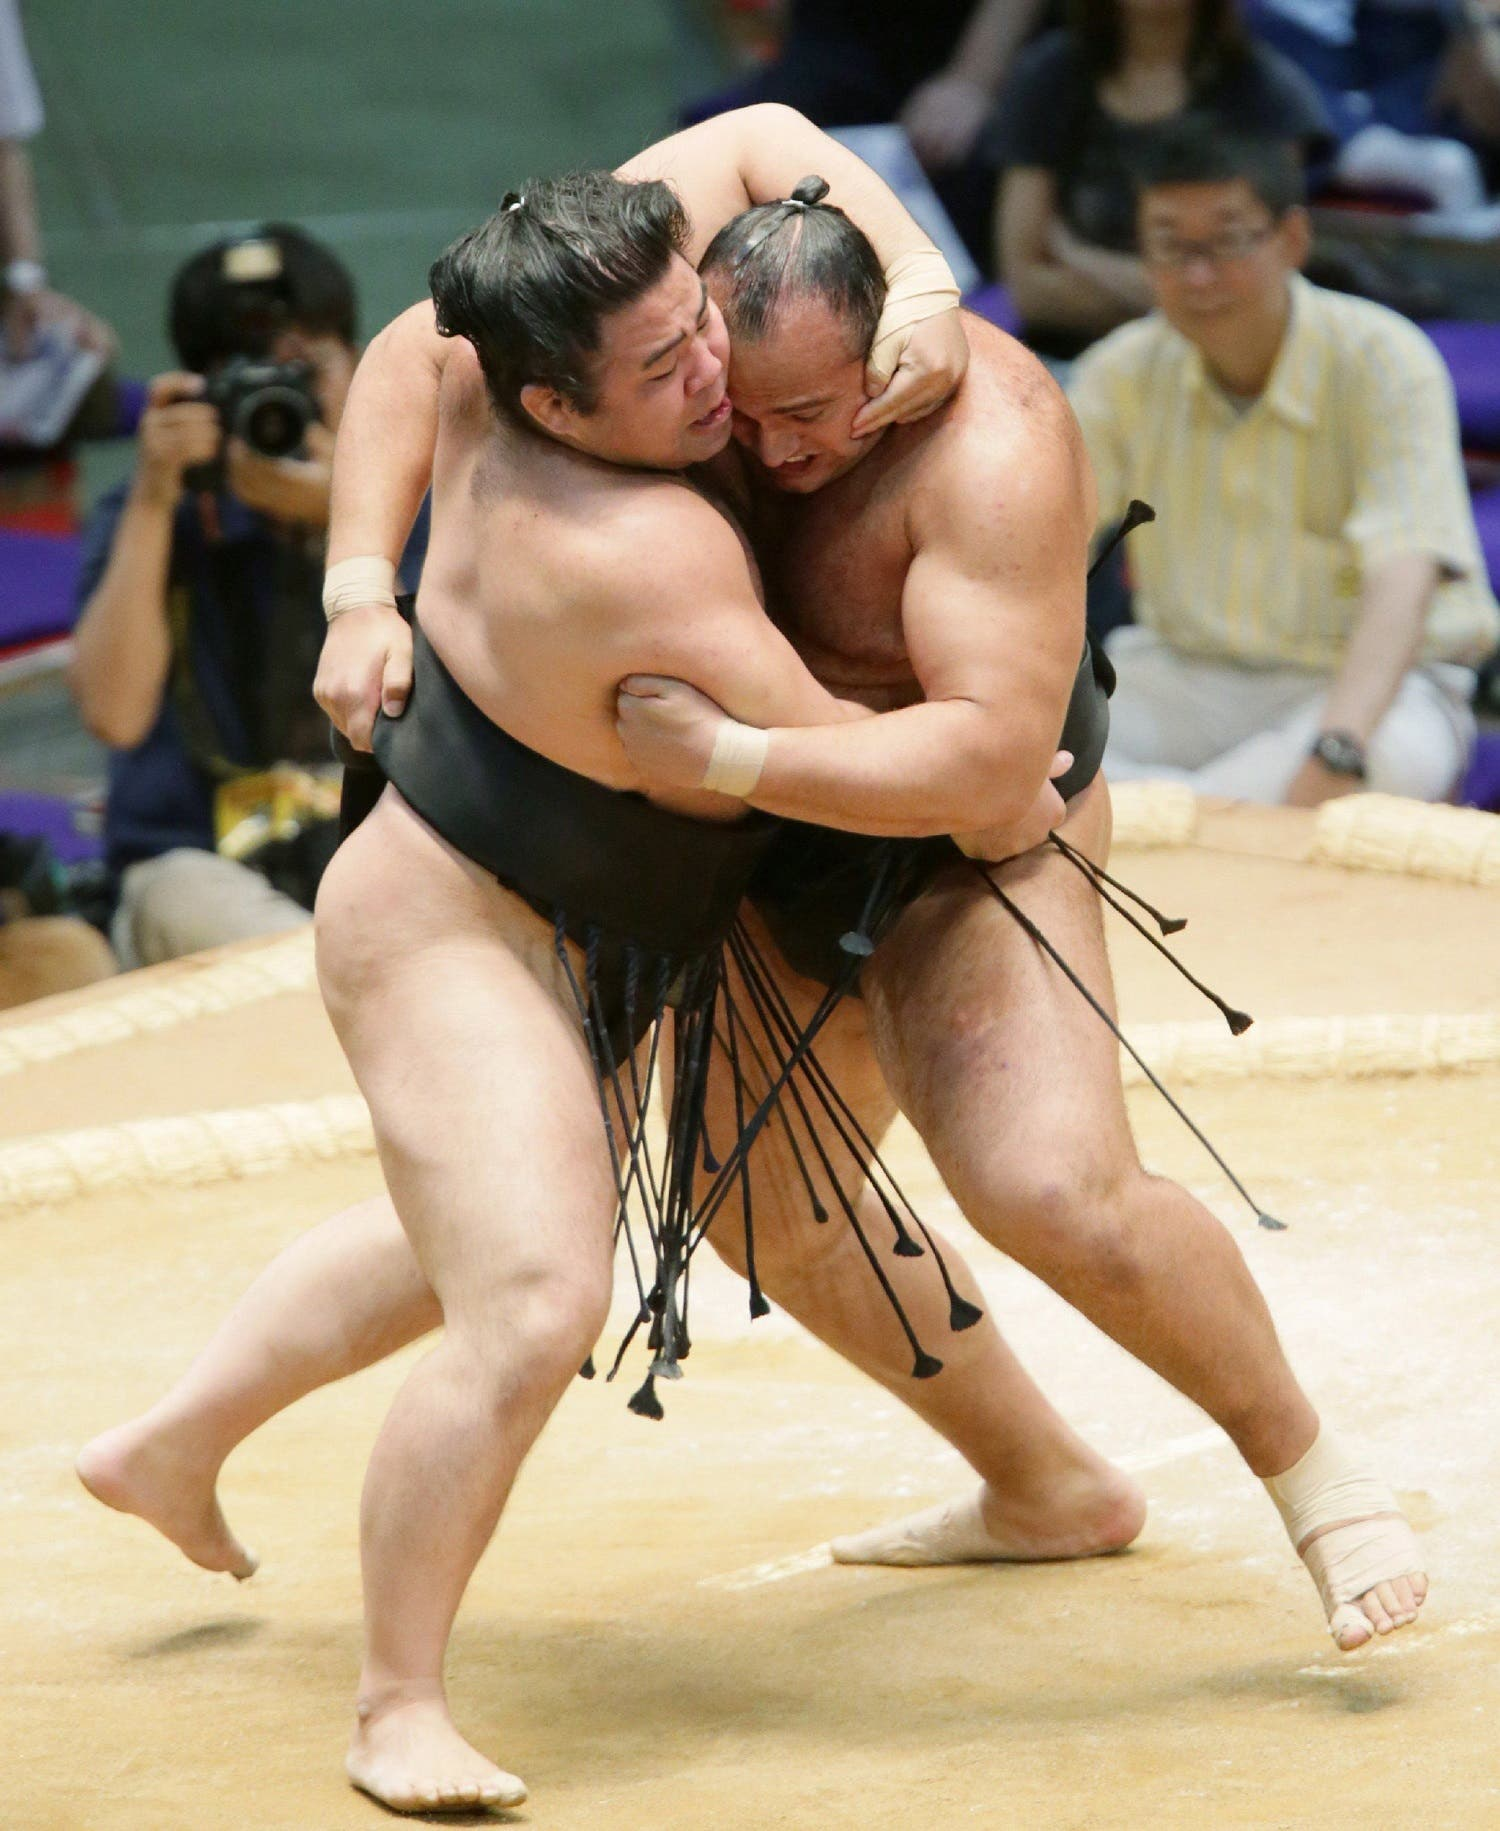 Osunaarashi pushes Satoyama (L) out of the ring during the second-day bout of the Nagoya Grand Sumo Tournament in Nagoya on July 8, 2013. (AFP)